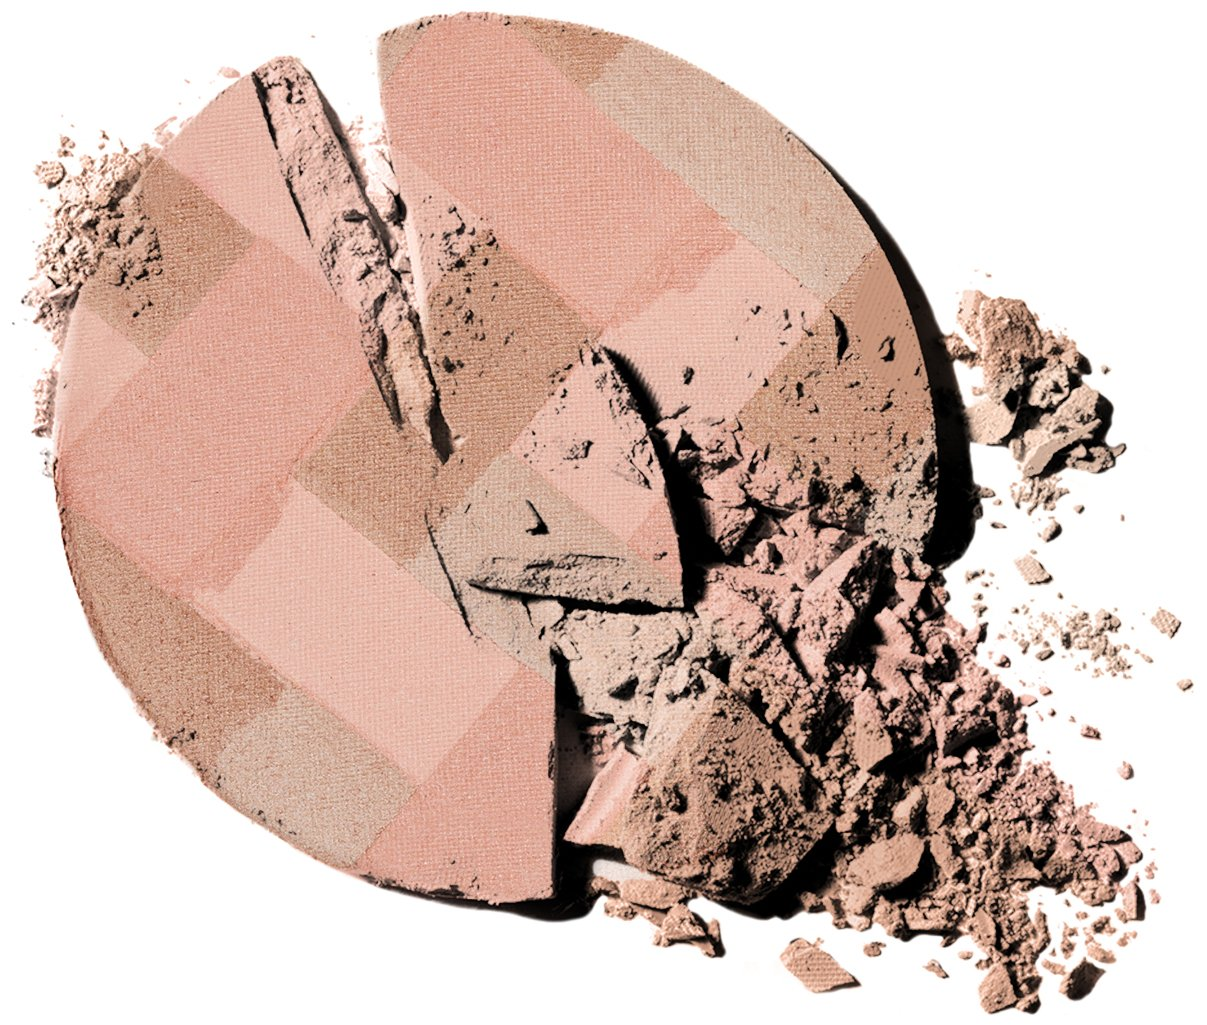 Maybelline New York Face Studio Master Hi-Light Blush, Nude, 0.31 Ounce by Maybelline New York (Image #2)